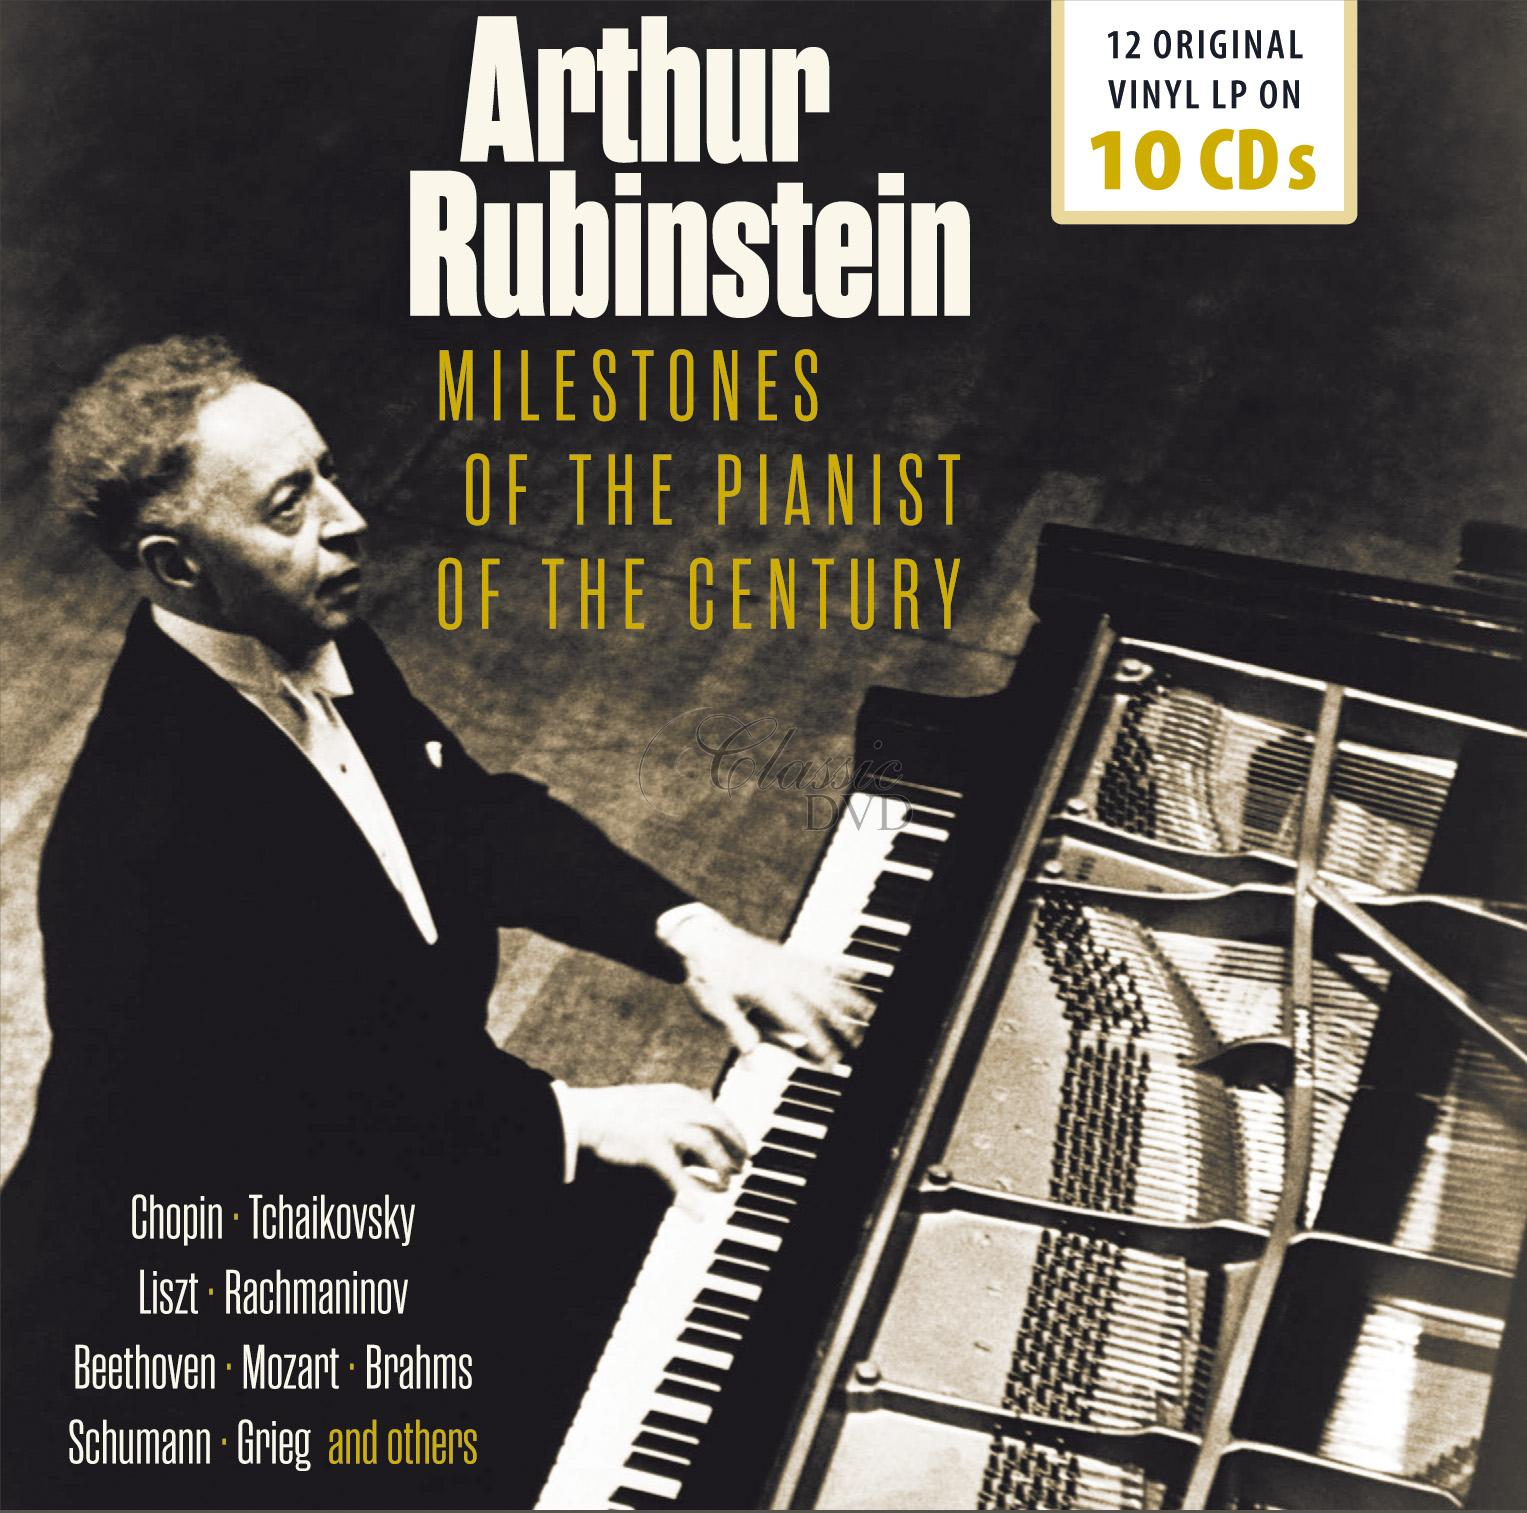 Arthur Rubinstein - Milestones of the Pianist of the Century (10CD)